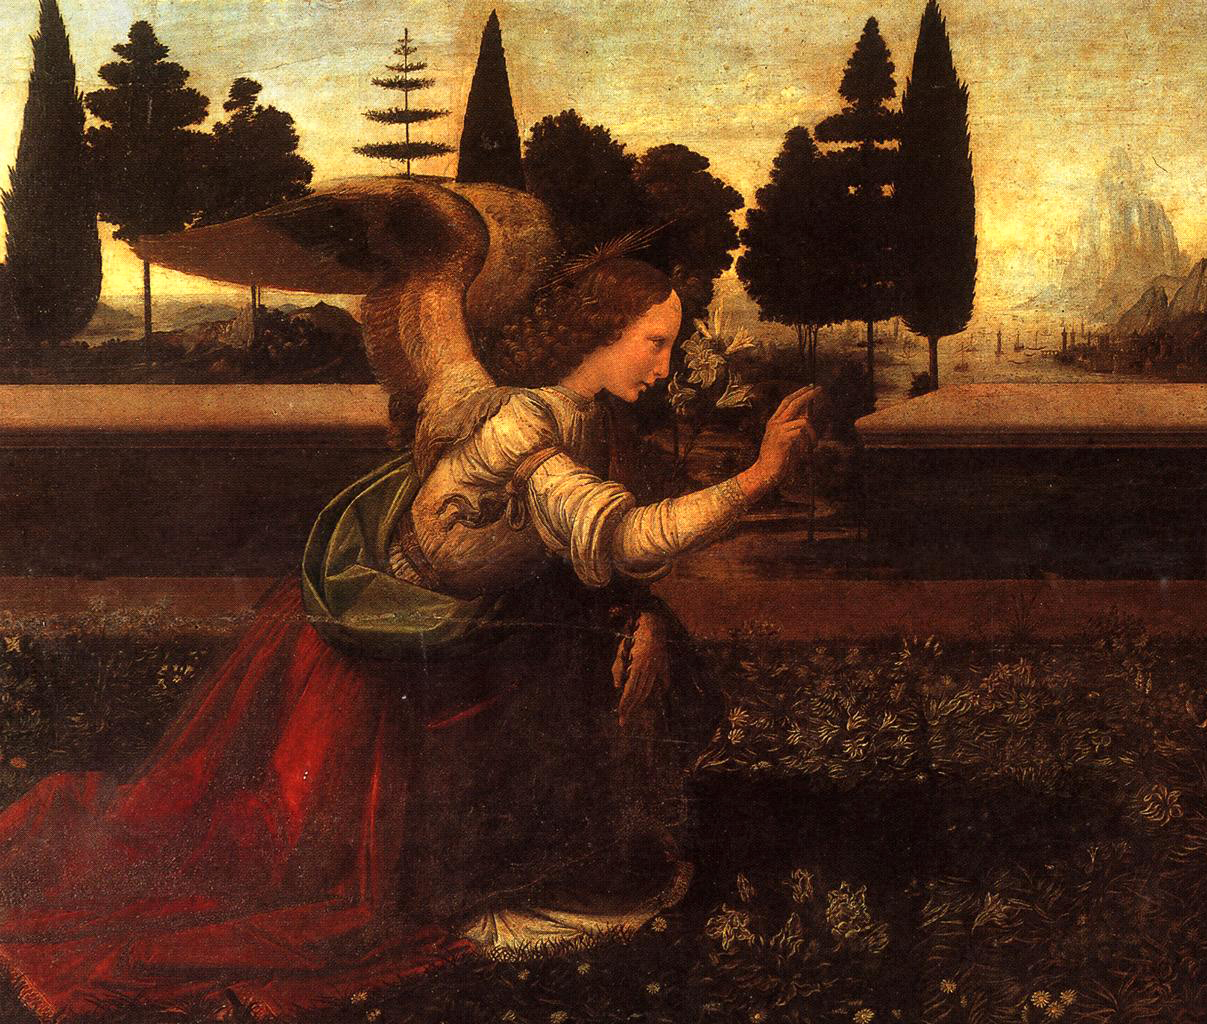 Detail from Annunciation/Leonardo